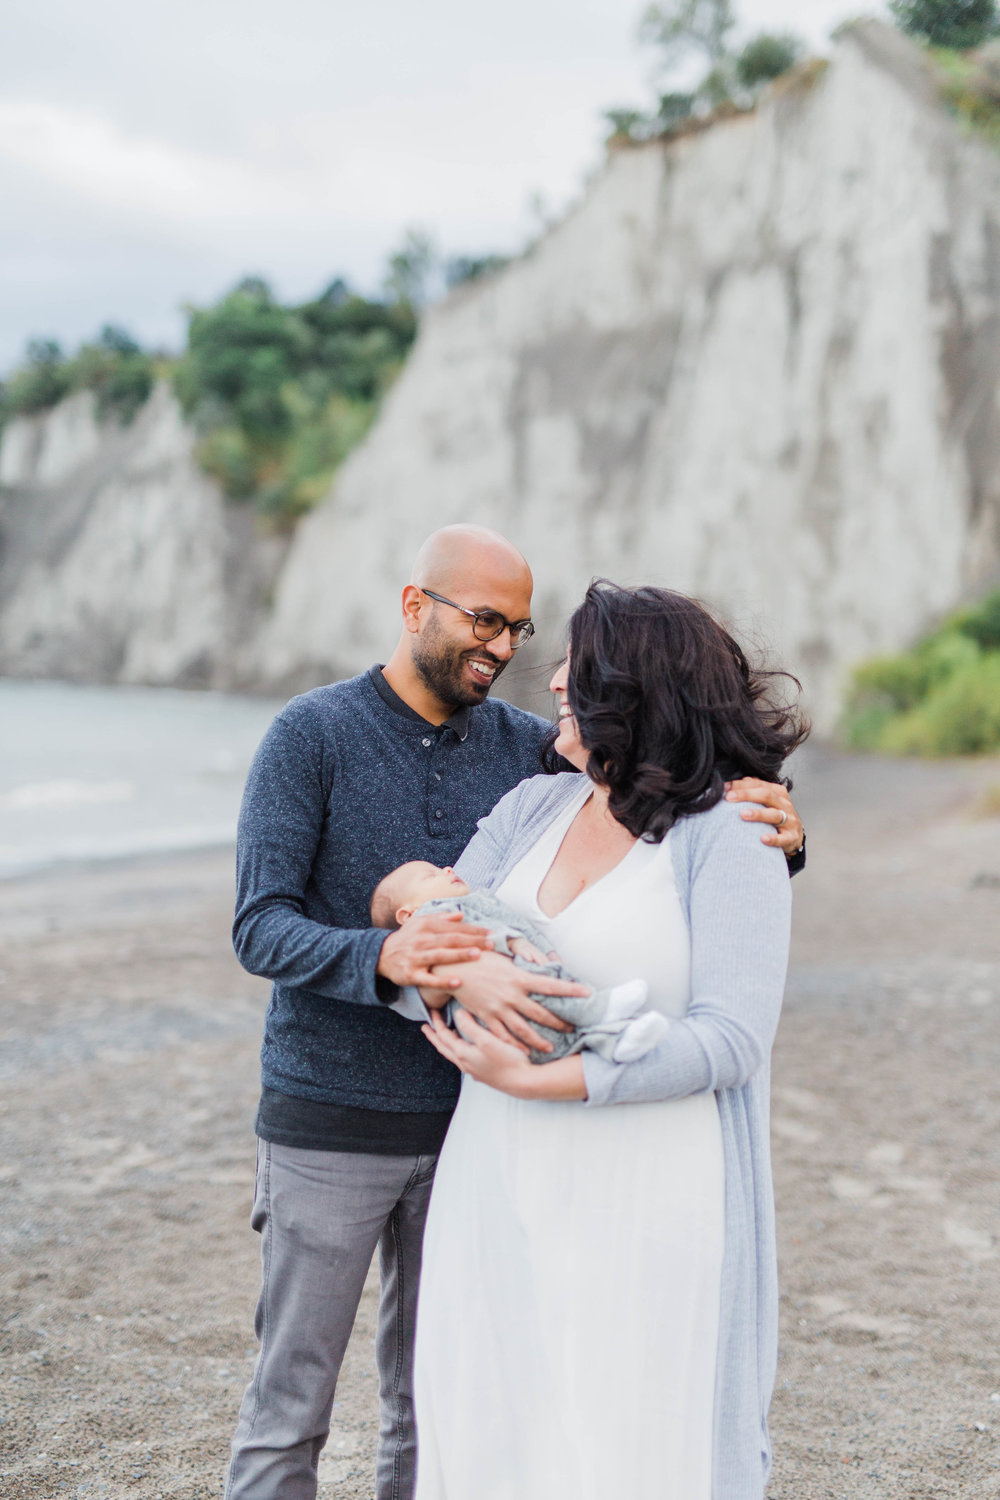 Danielle-Giroux_Lindsay-Sunil_Newborn-Session_Scarborough-Bluffs_-0056.jpg